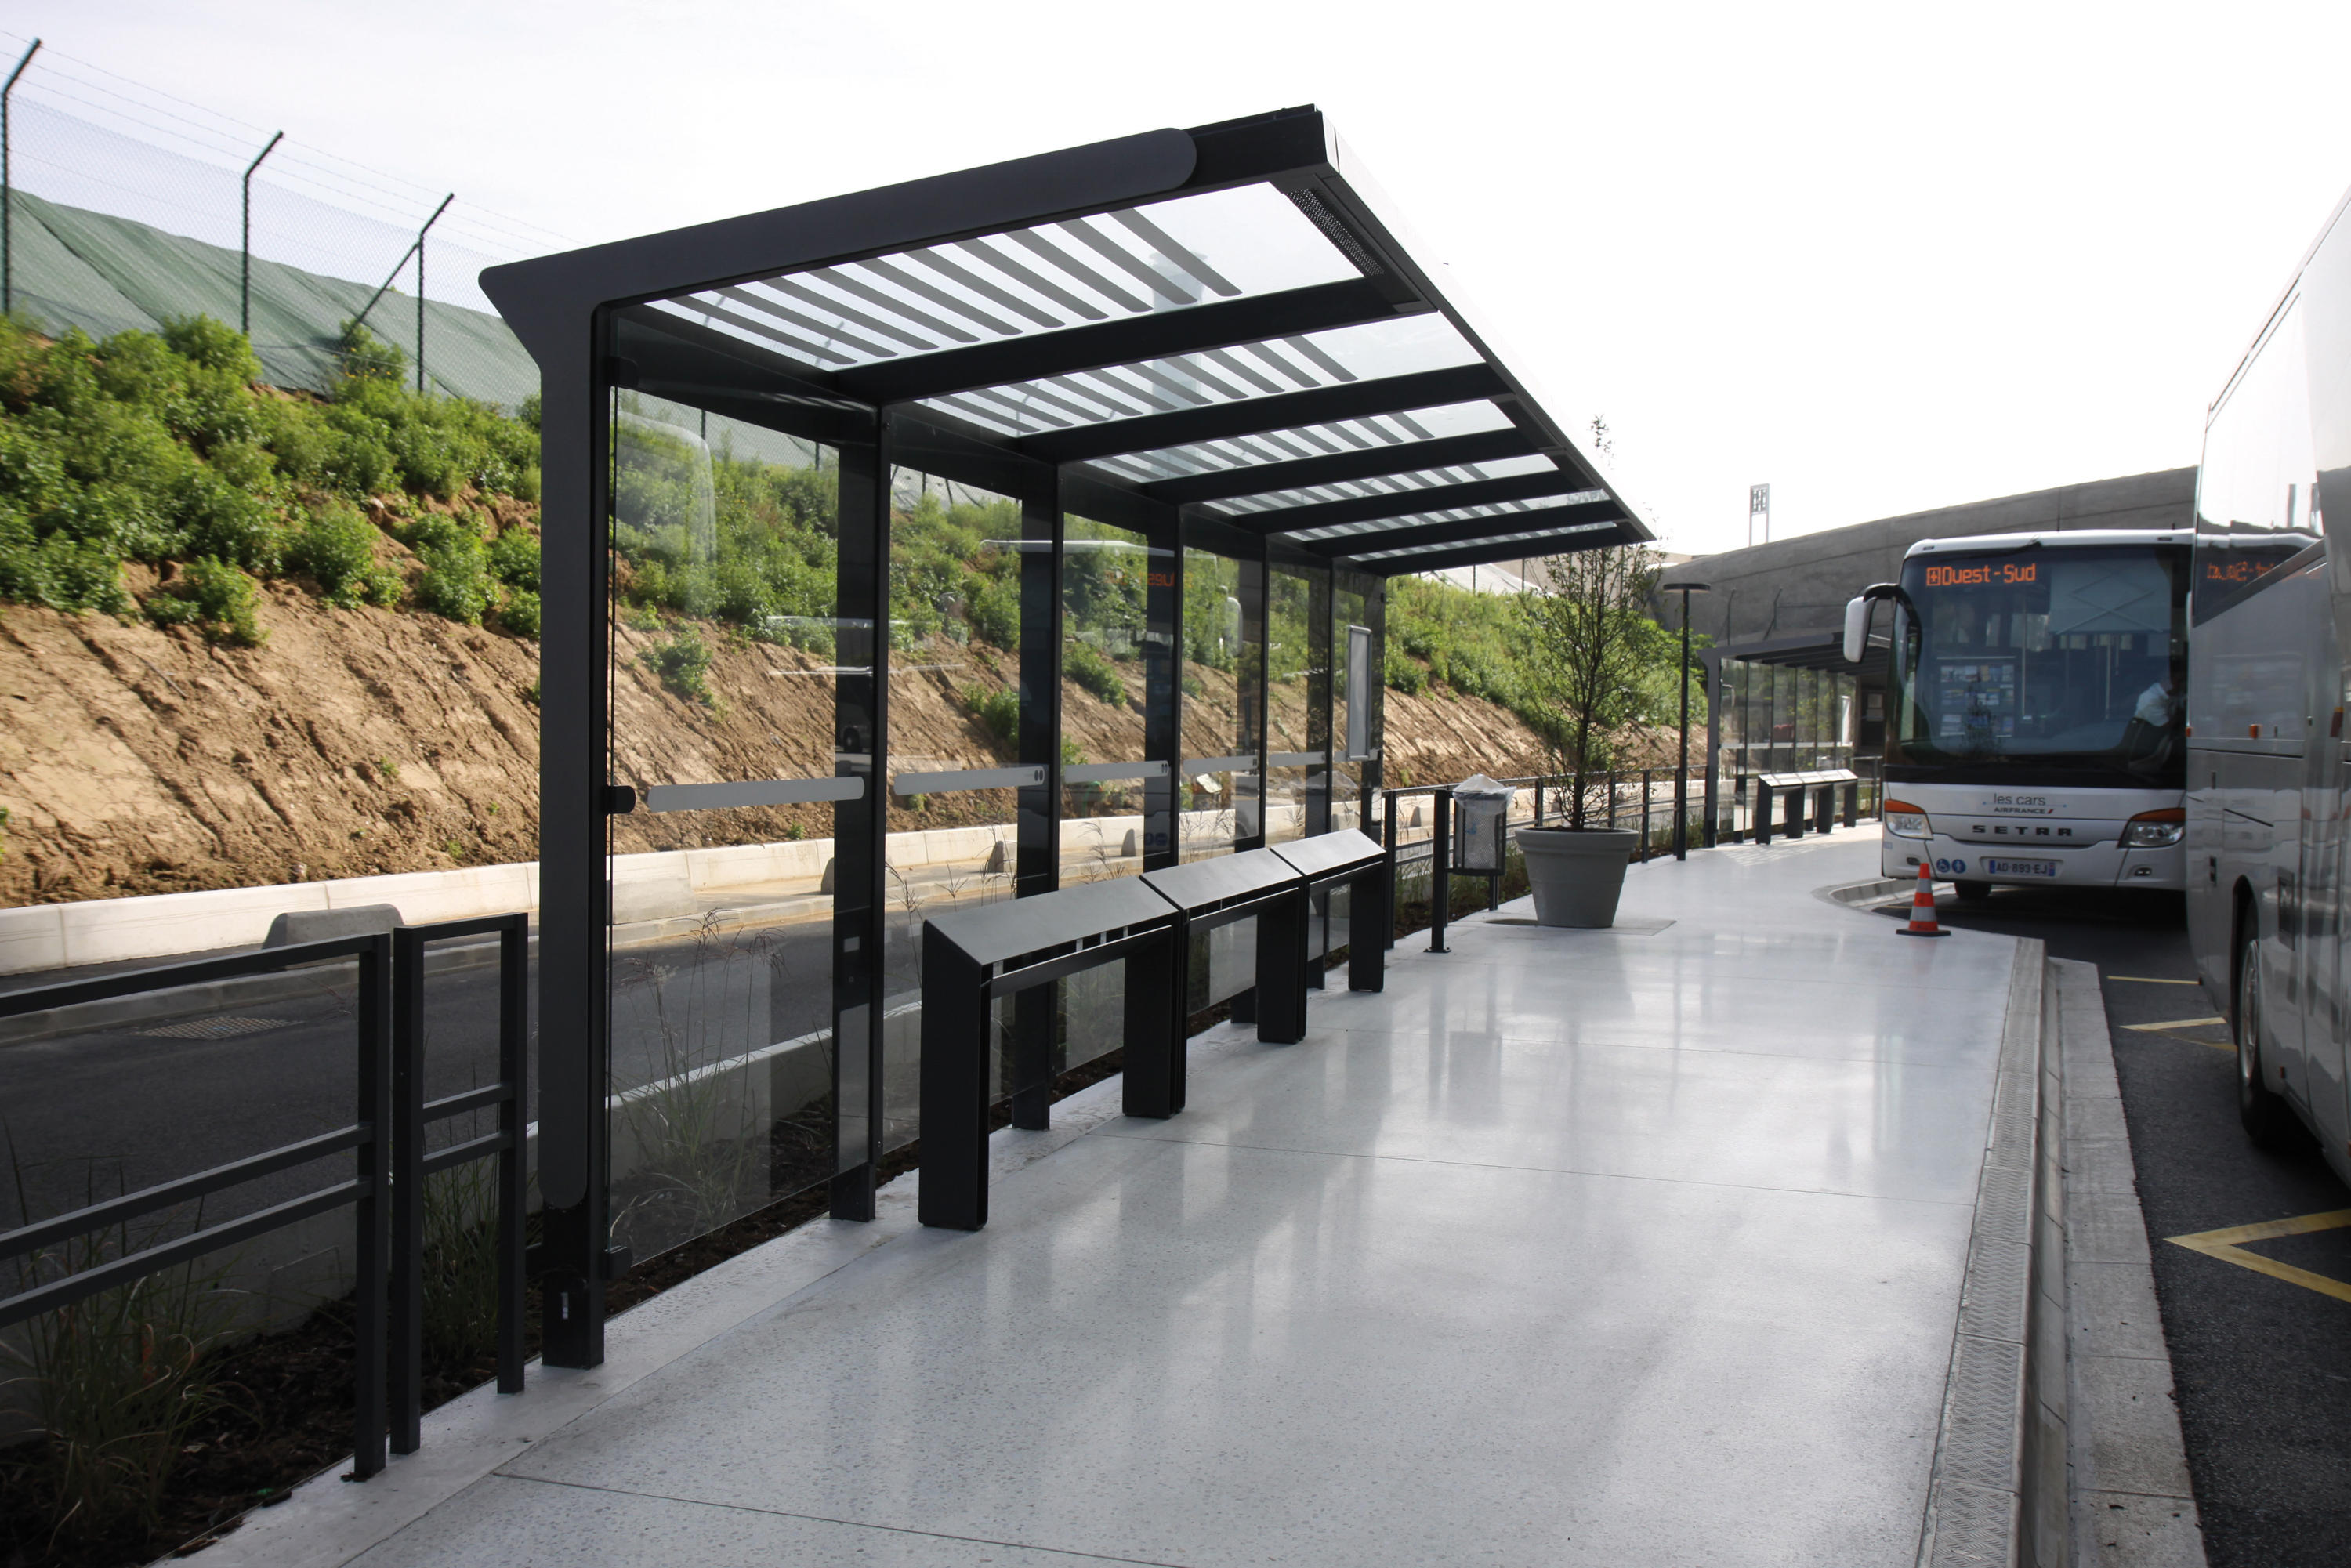 Aureo bus stop shelter bus stop shelters from mmcit - Perfiles de acero ...